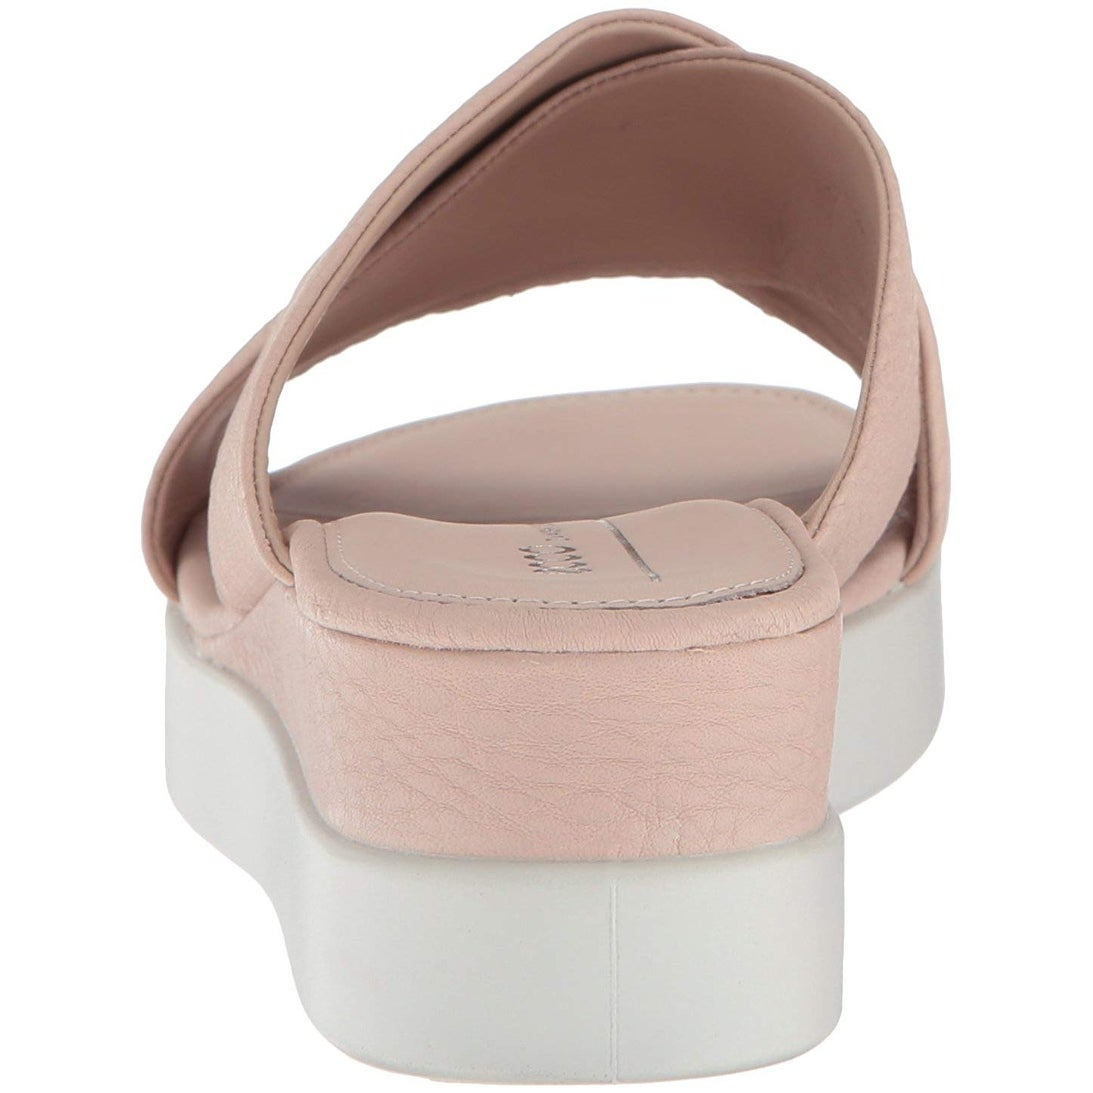 f033e718ed3e Shop ECCO Womens Touch Leather Open Toe Casual Slide Sandals - Free  Shipping Today - Overstock - 21138251